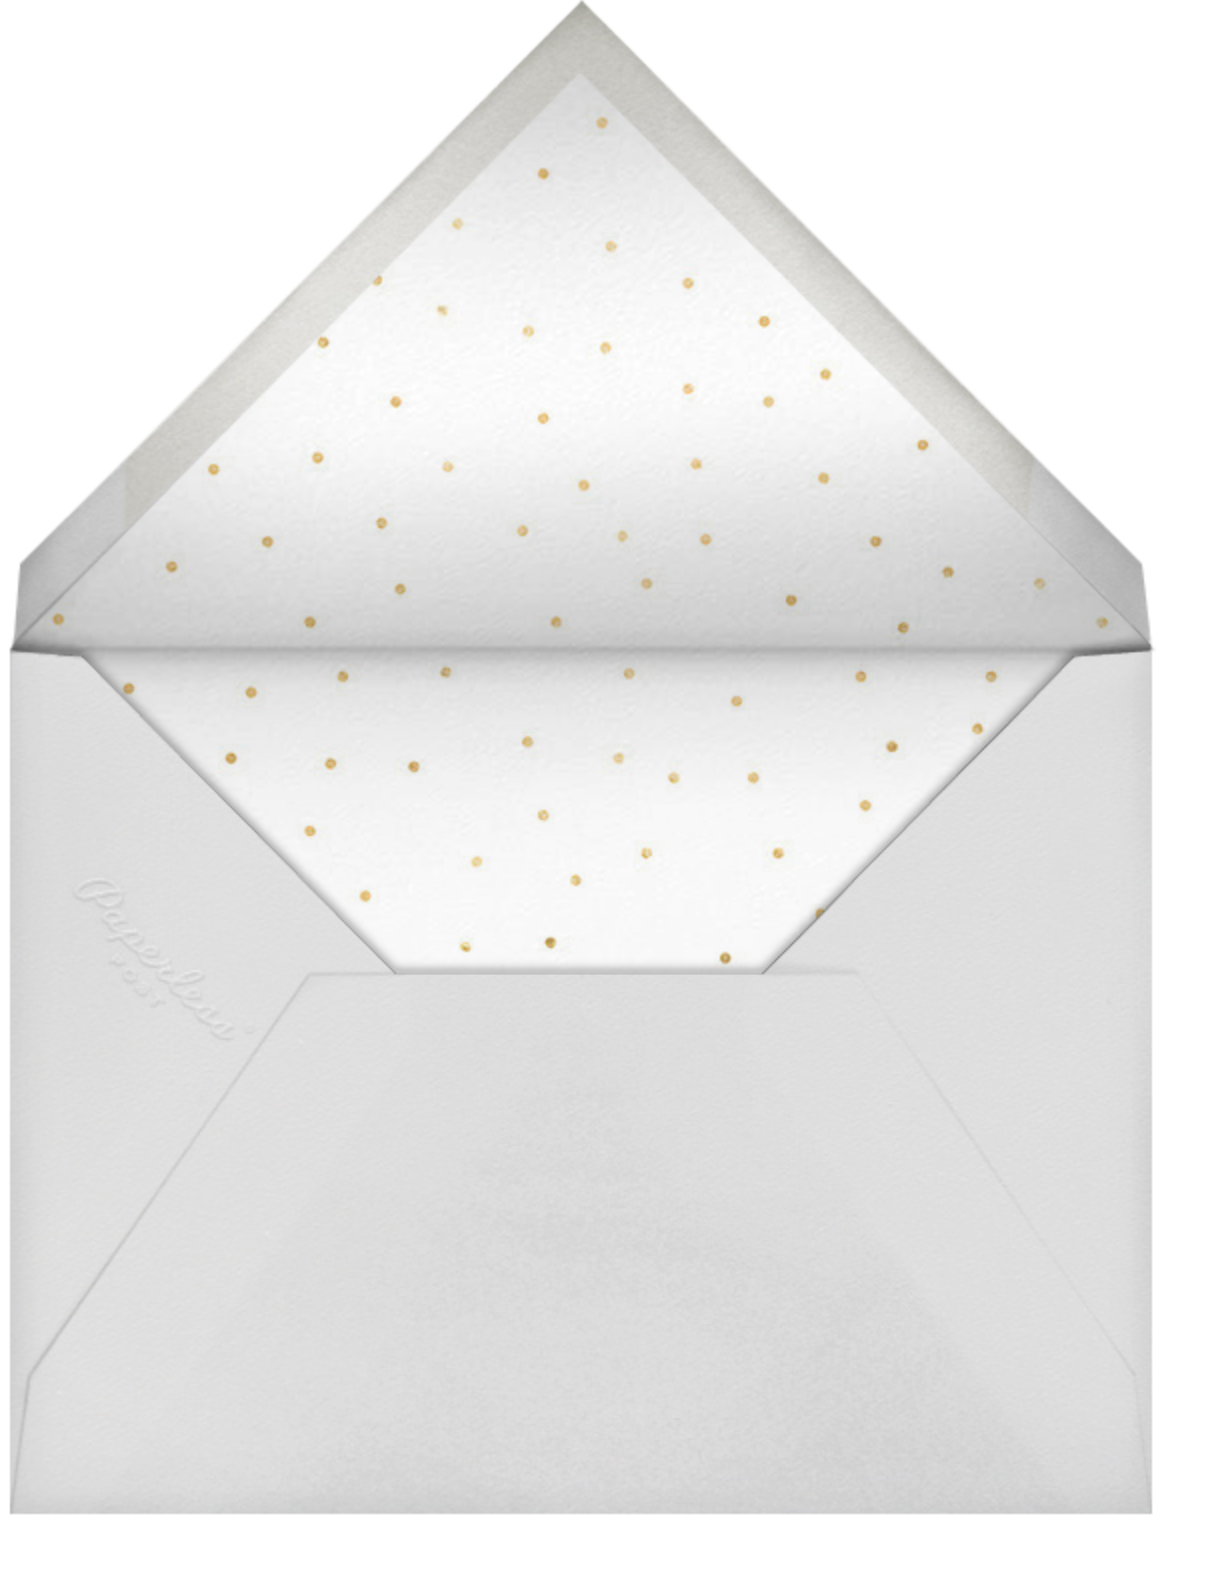 Eat Cake Make Wishes - White/Gold - Sugar Paper - Adult birthday - envelope back